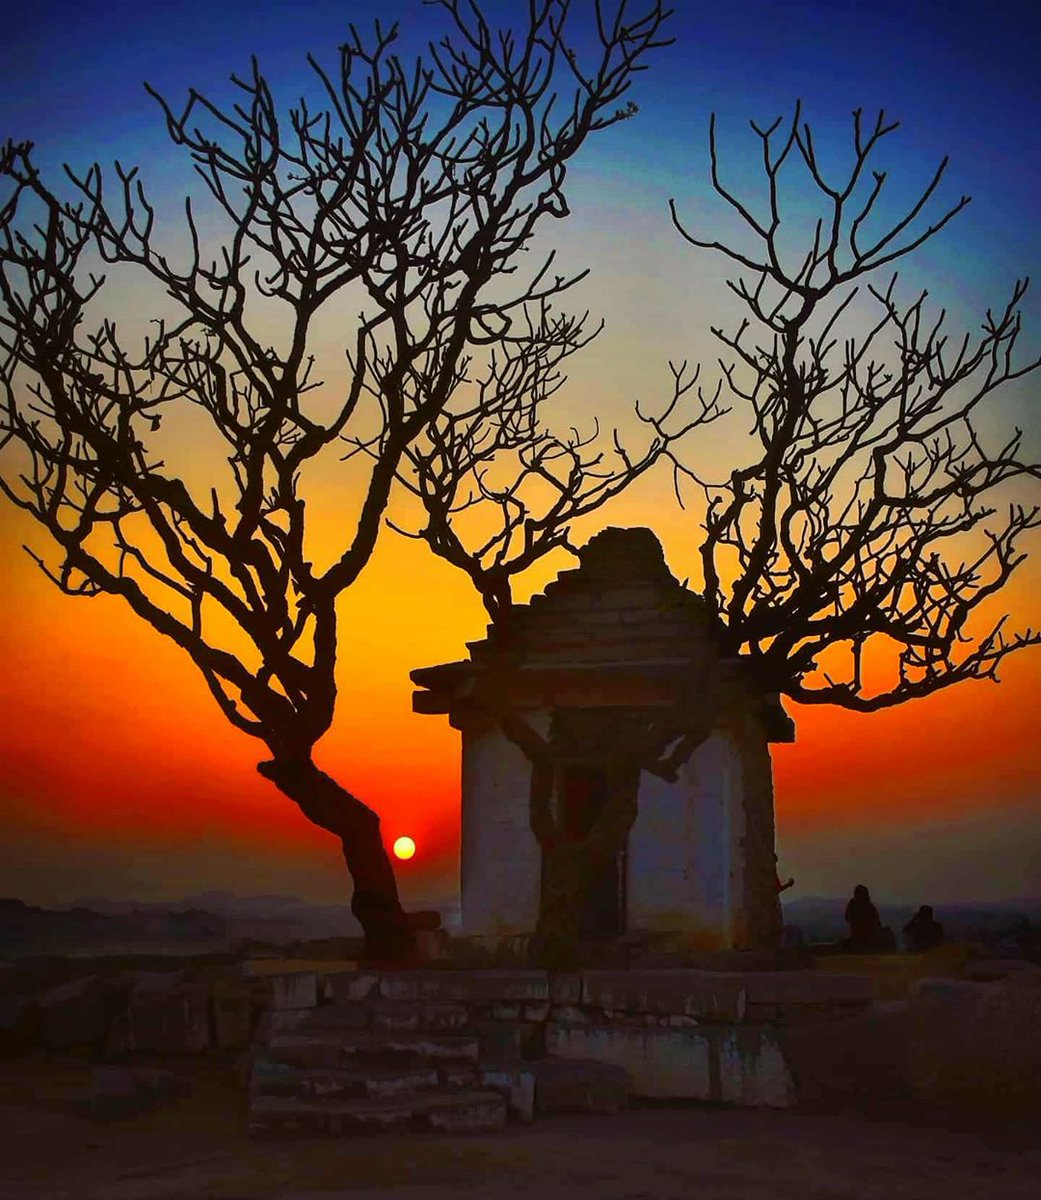 Hampi was originally called Pampa-Kshetra after Hindu Deity Pampa (another name of Goddess Parvati).   It is believed in Hindu mythology that Goddess Parvati led the life of a yogini in the Hemkunta hills of Hampi, to convince Shiva to marry her.   #CliosChronicles